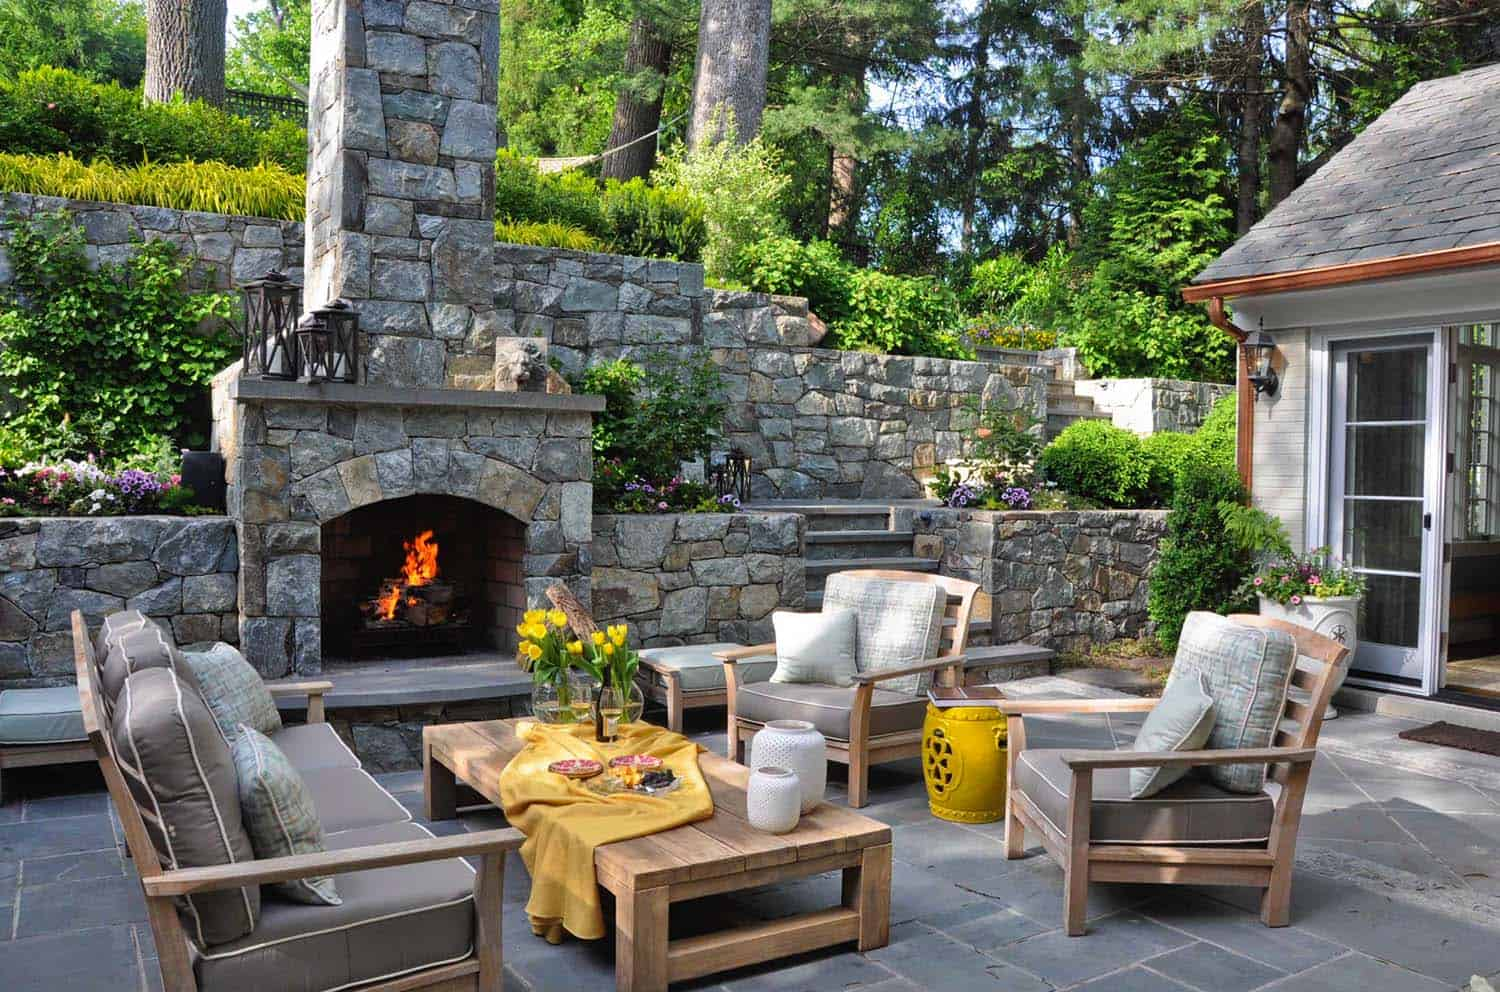 30+ Irresistible outdoor fireplace ideas that will leave ... on Outdoor Fireplaces Ideas  id=93104